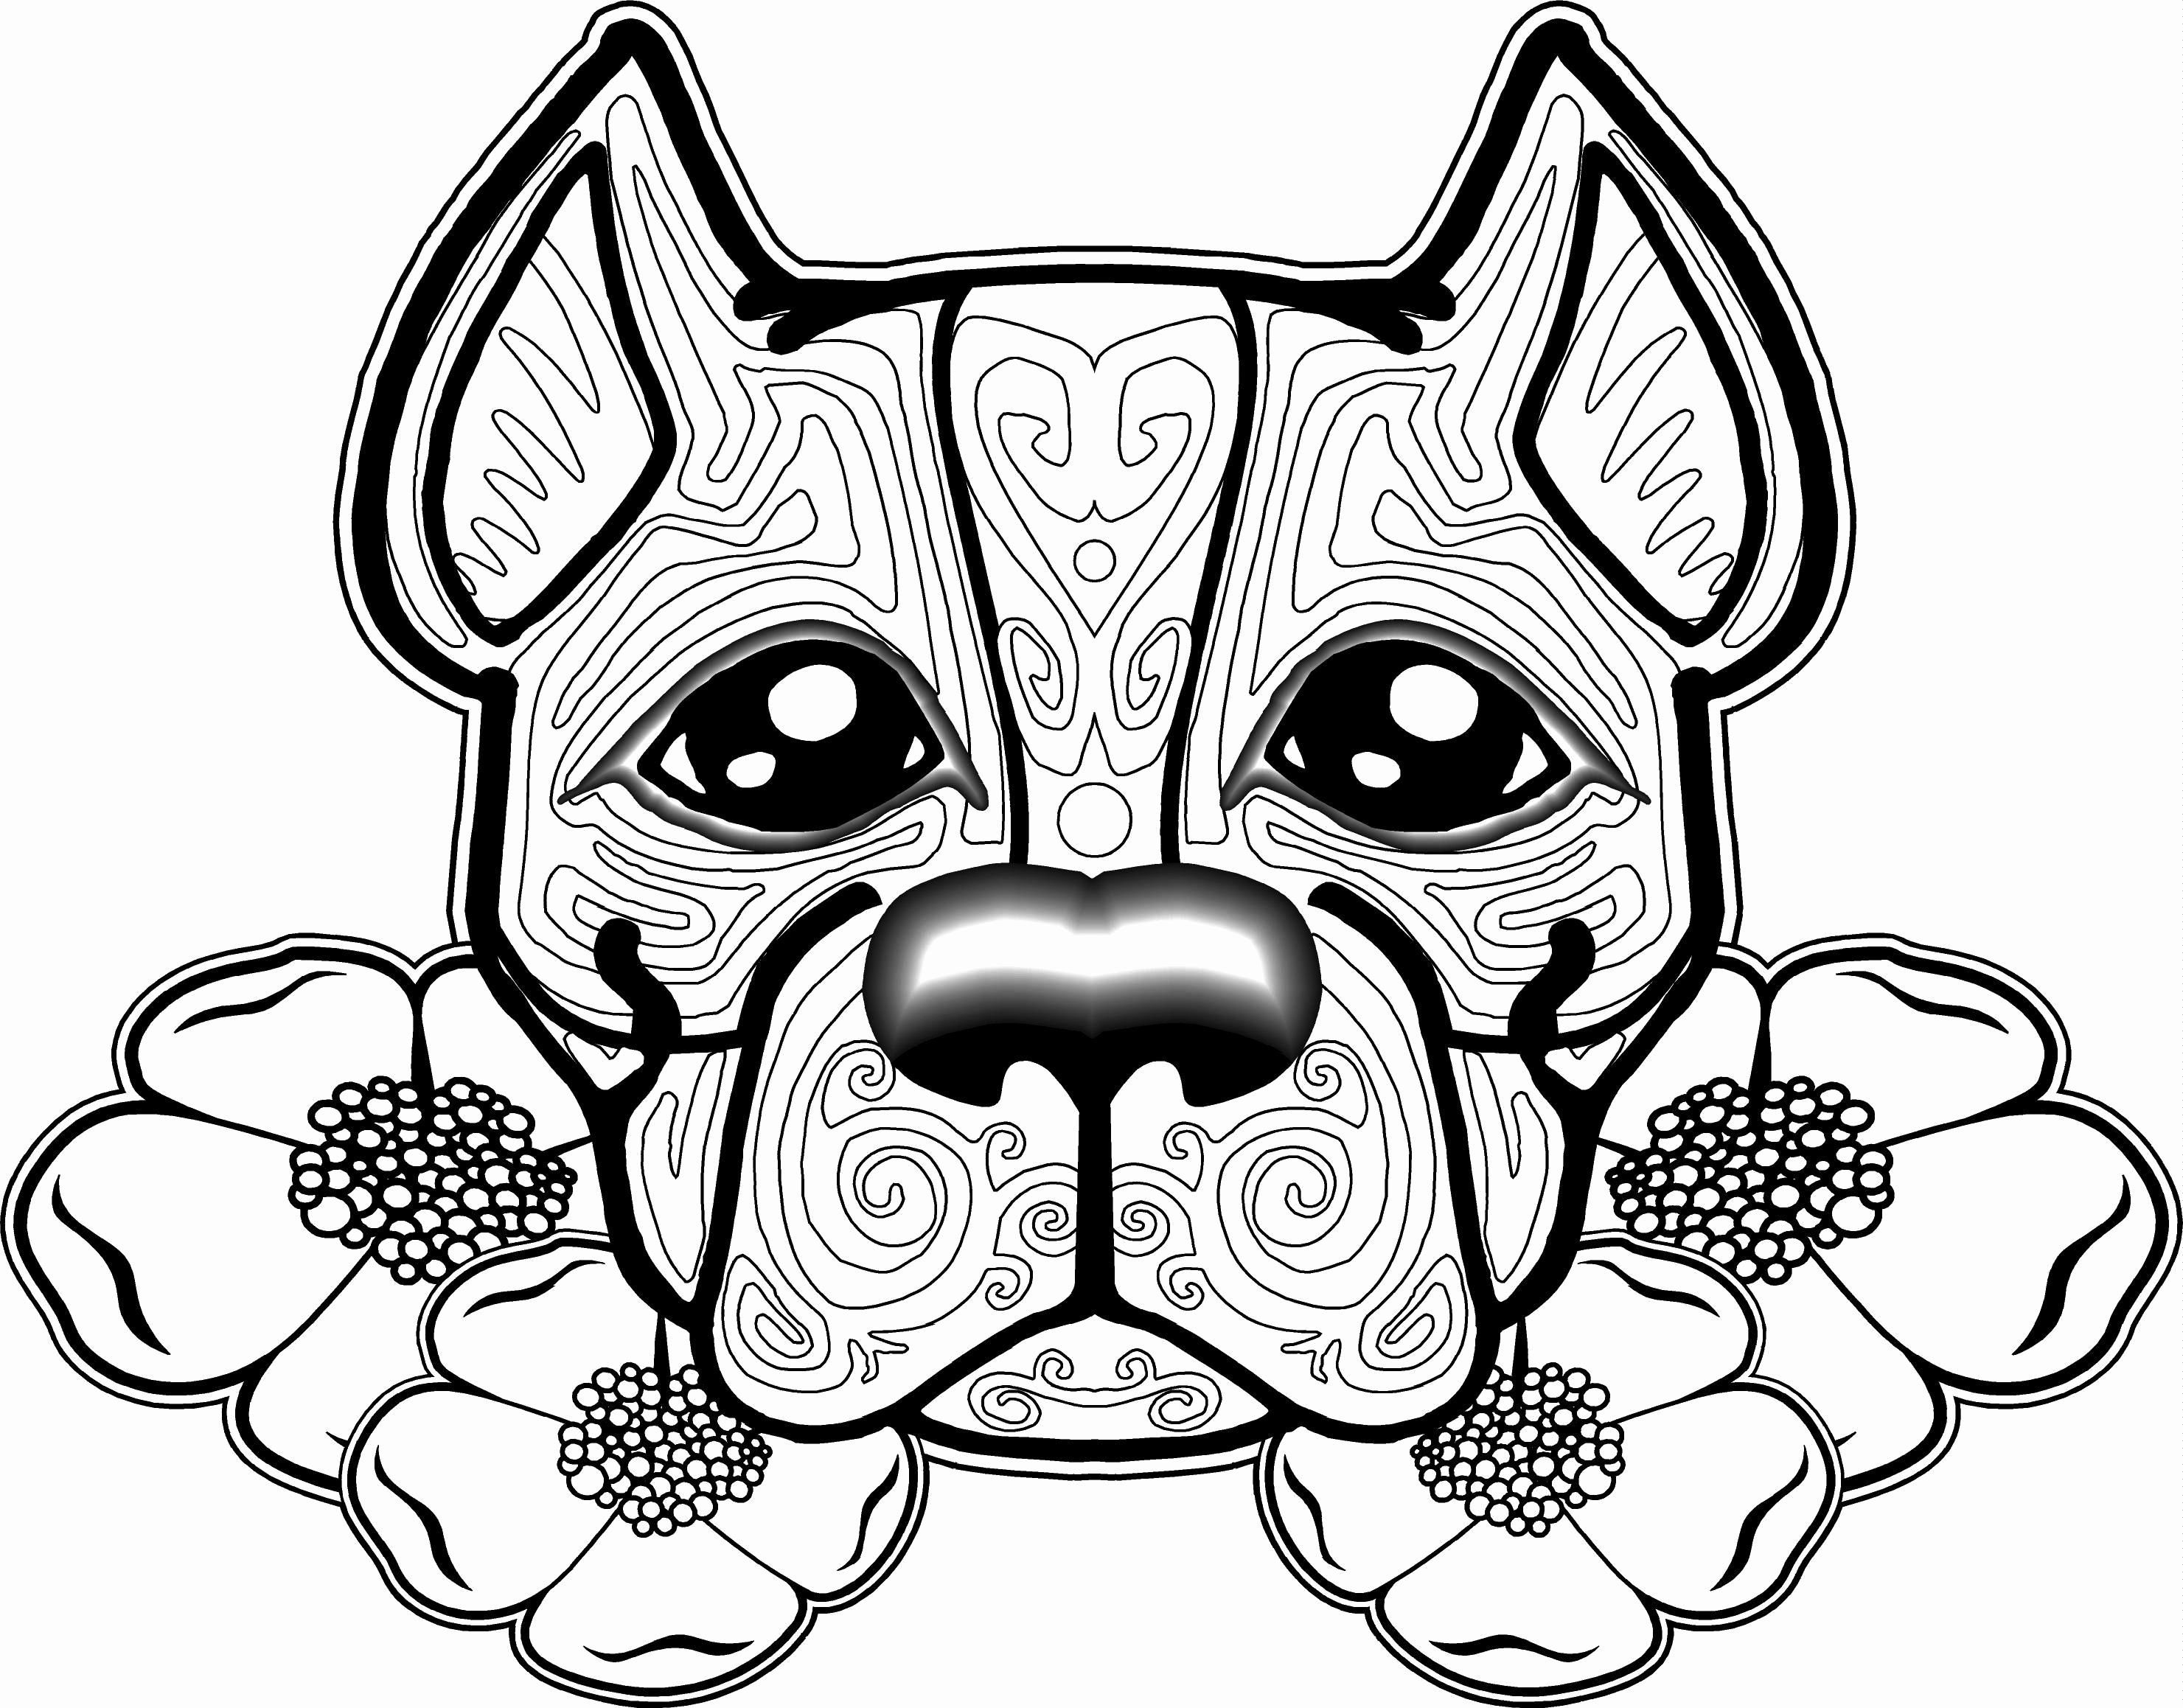 Zentangle Cat Coloring Pages Fresh Free Printable Dog Coloring Pages For Adults In 2020 Dog Coloring Page Farm Animal Coloring Pages Cat Coloring Page